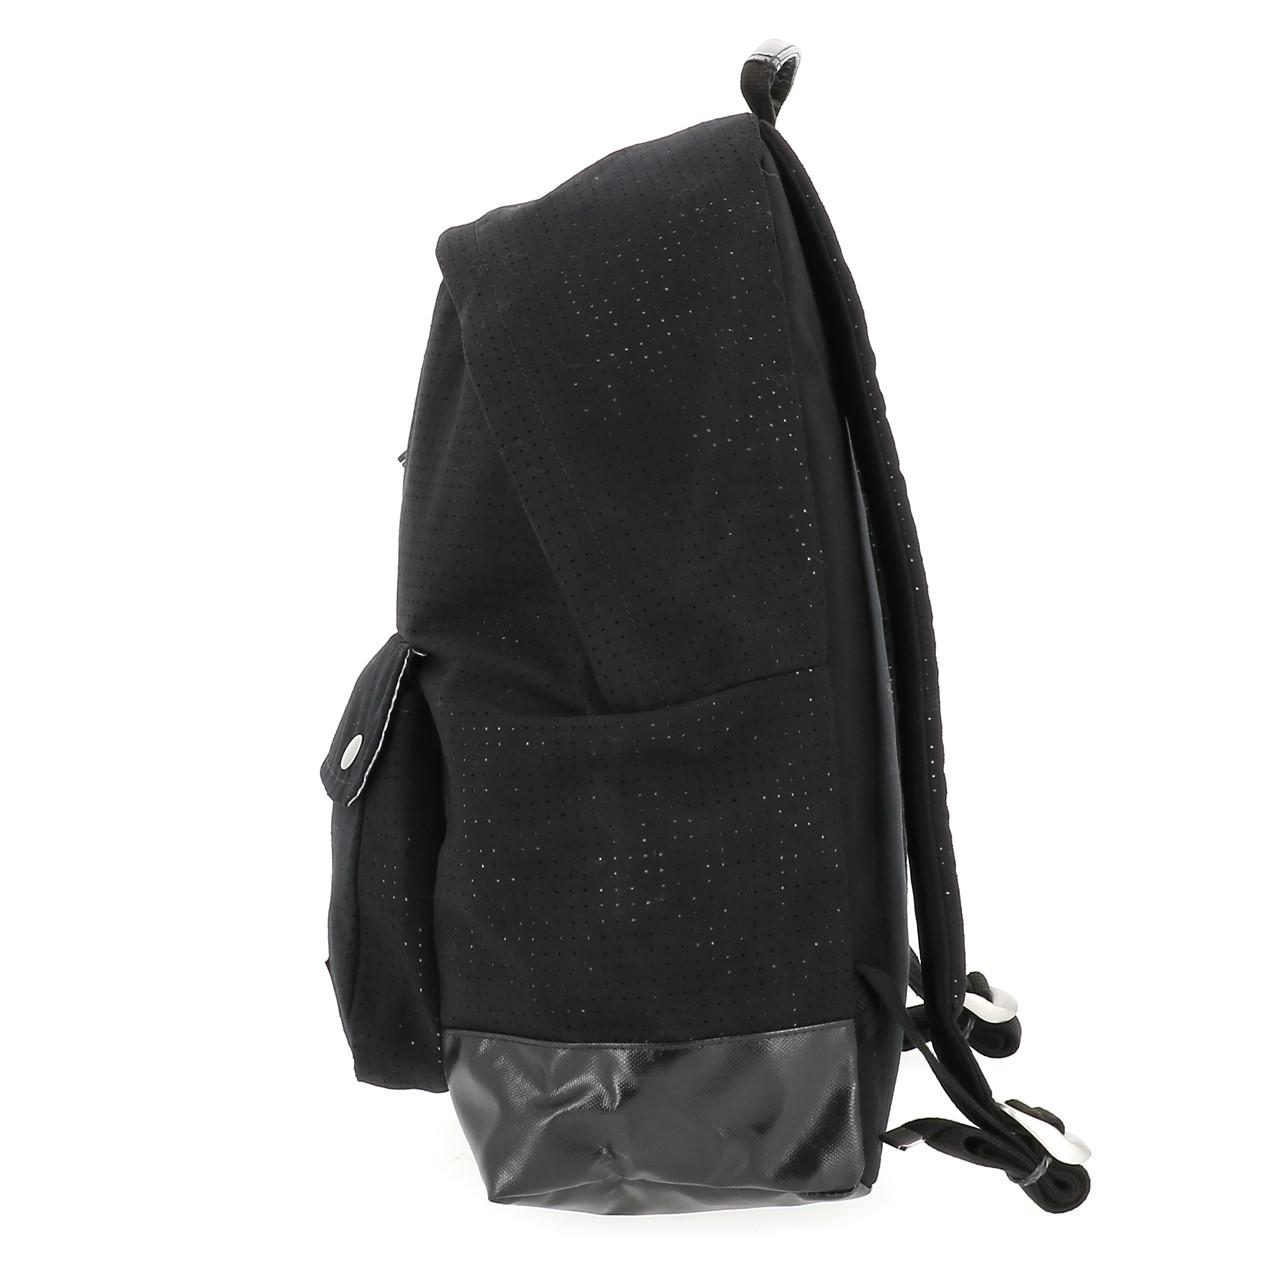 Sac-a-dos-college-Eastpak-Padded-pinched-black-Noir-70649-Neuf miniature 2